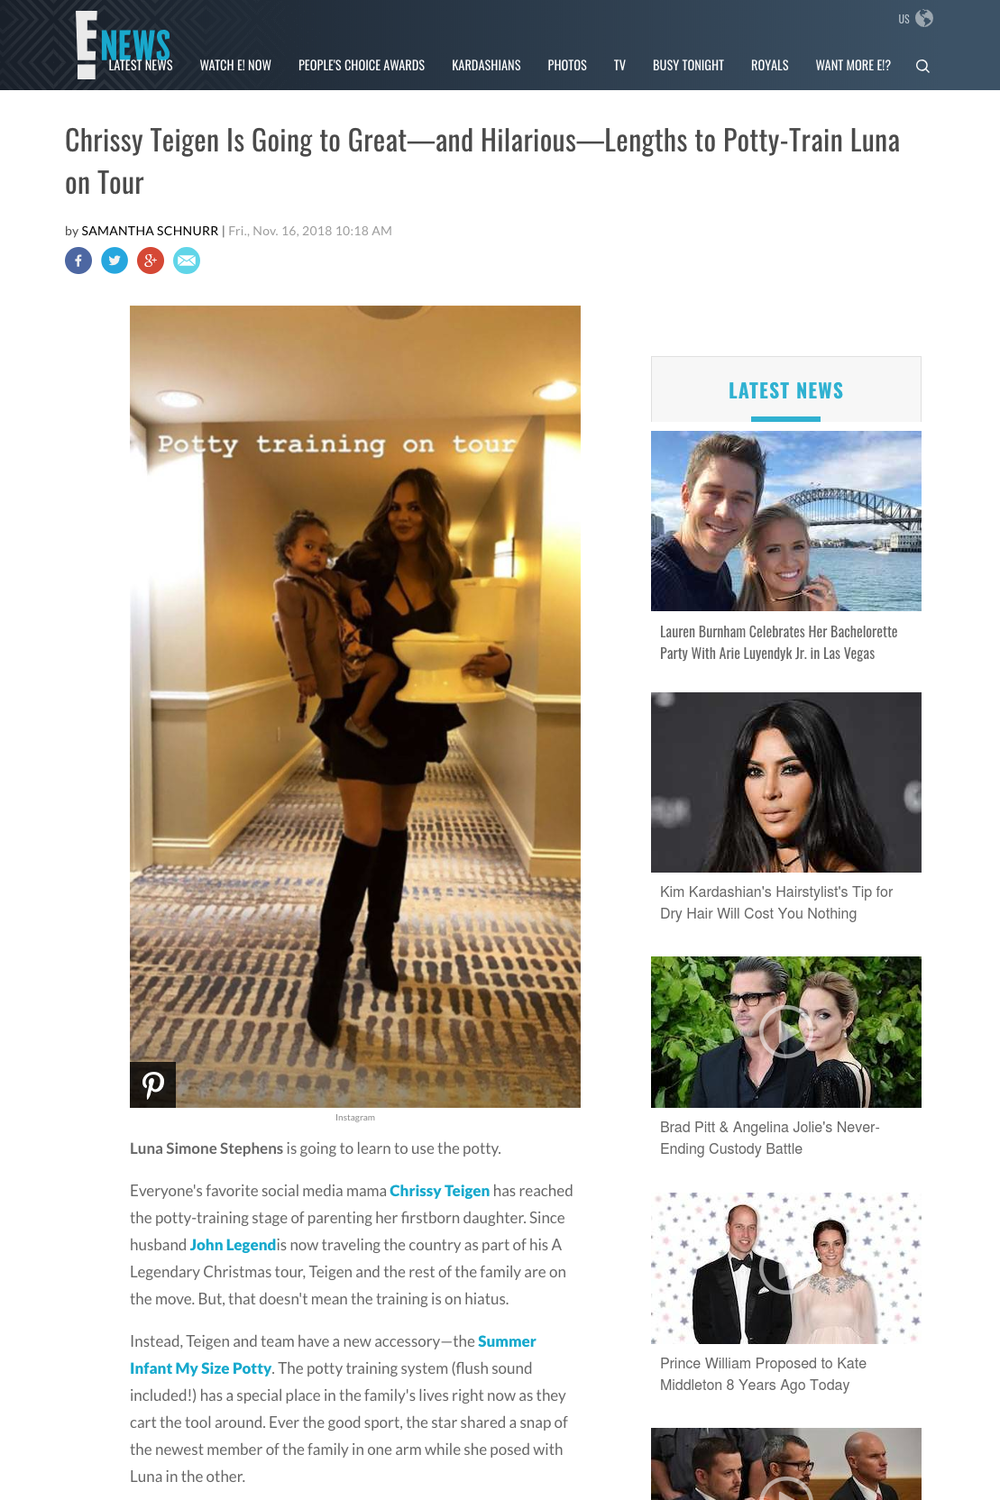 2018.11.16_E! Entertainment Television Online_Summer Infant My Size Potty with Celebrity Chrissy Teigen_original, cropped 2x3.png